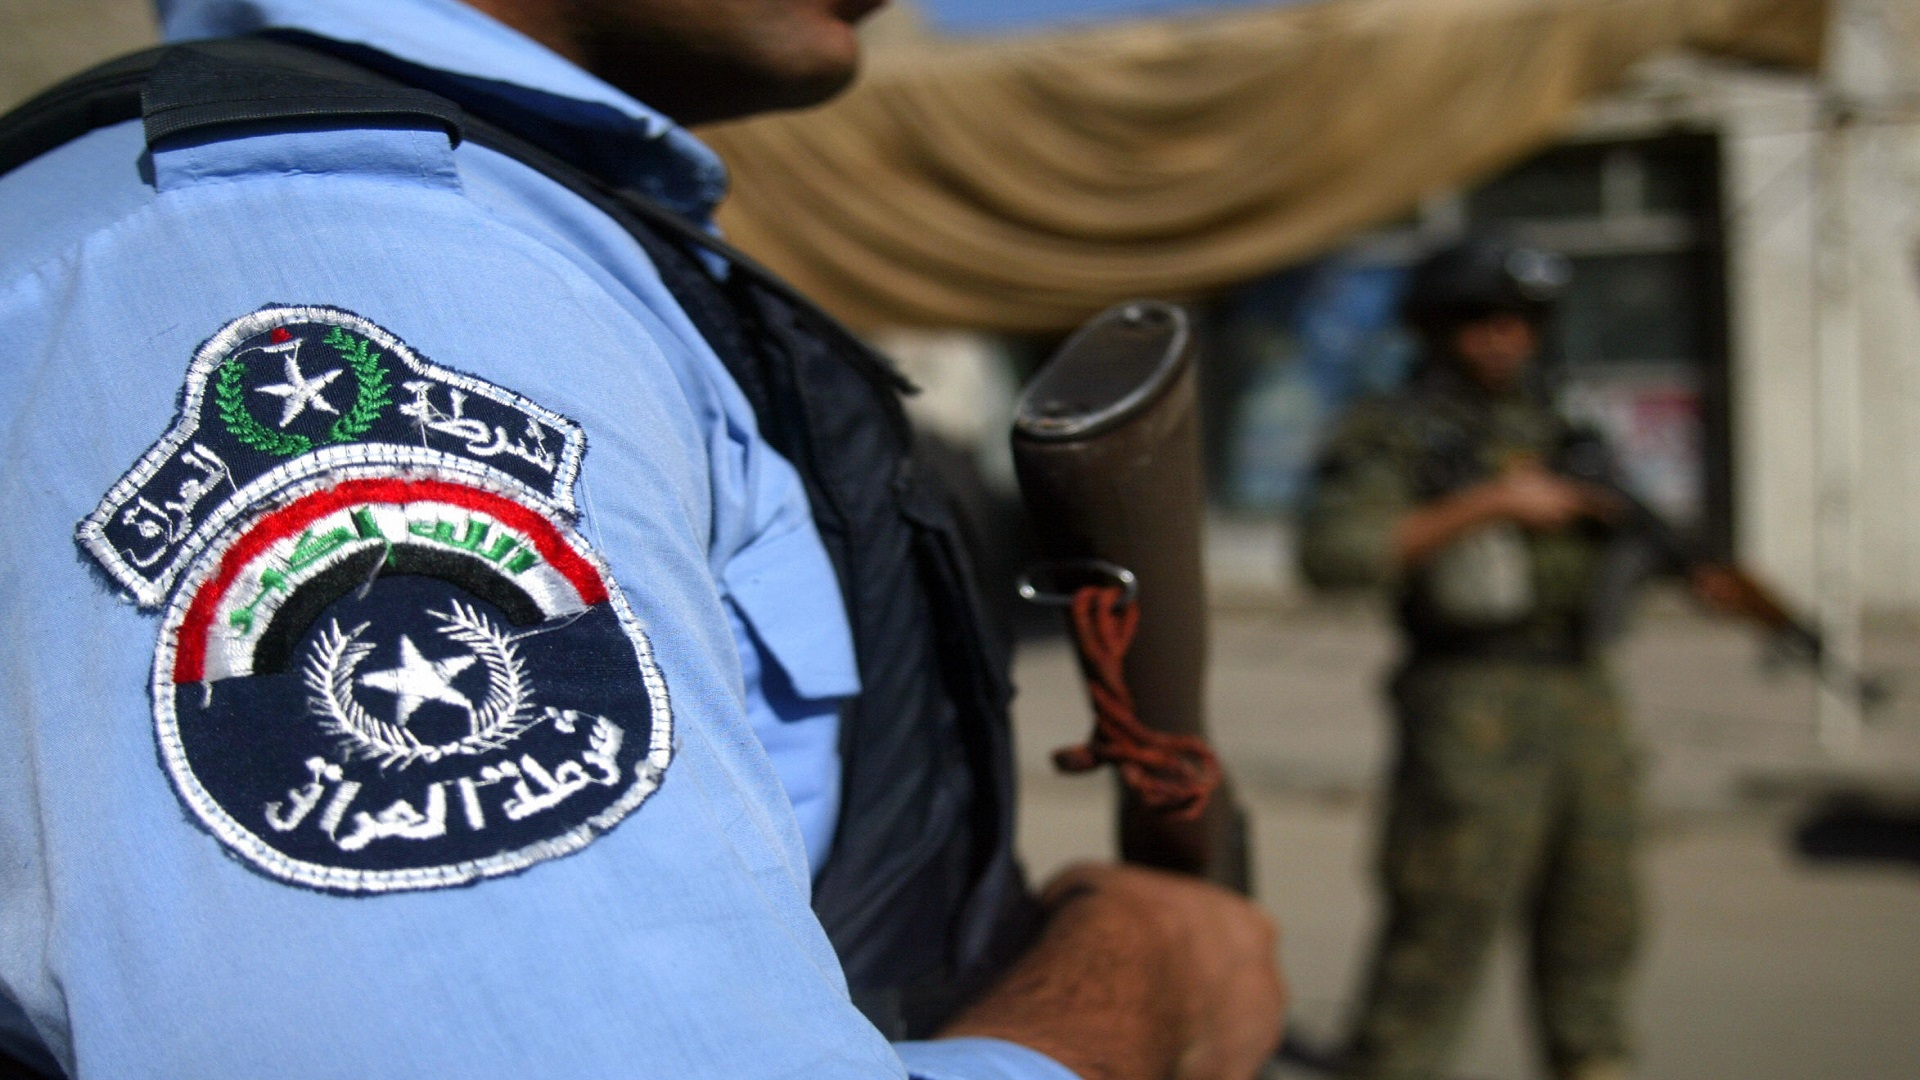 About 400 people arrested in Baghdad for violating coronavirus curfew